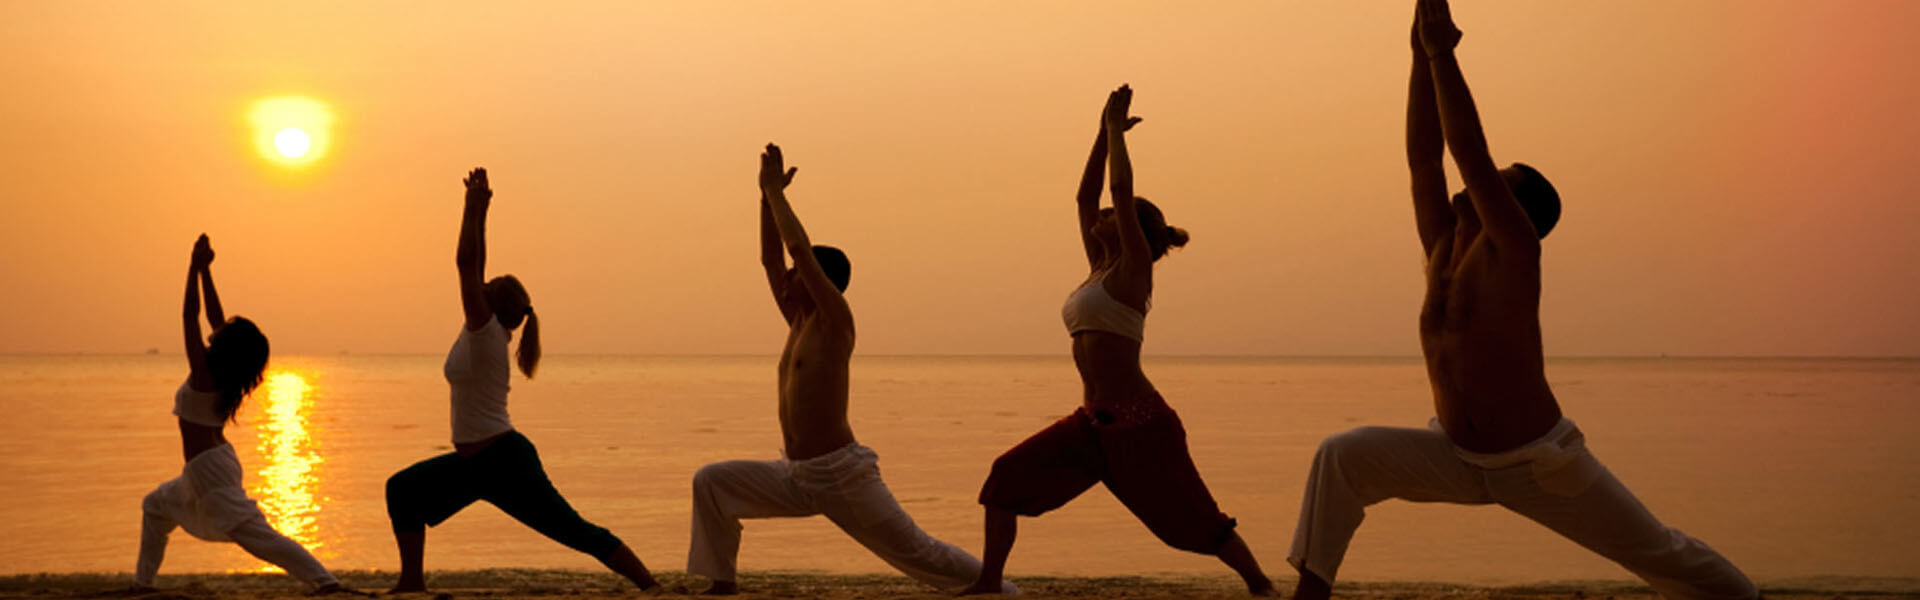 Yoga, Ayurveda & Beaches